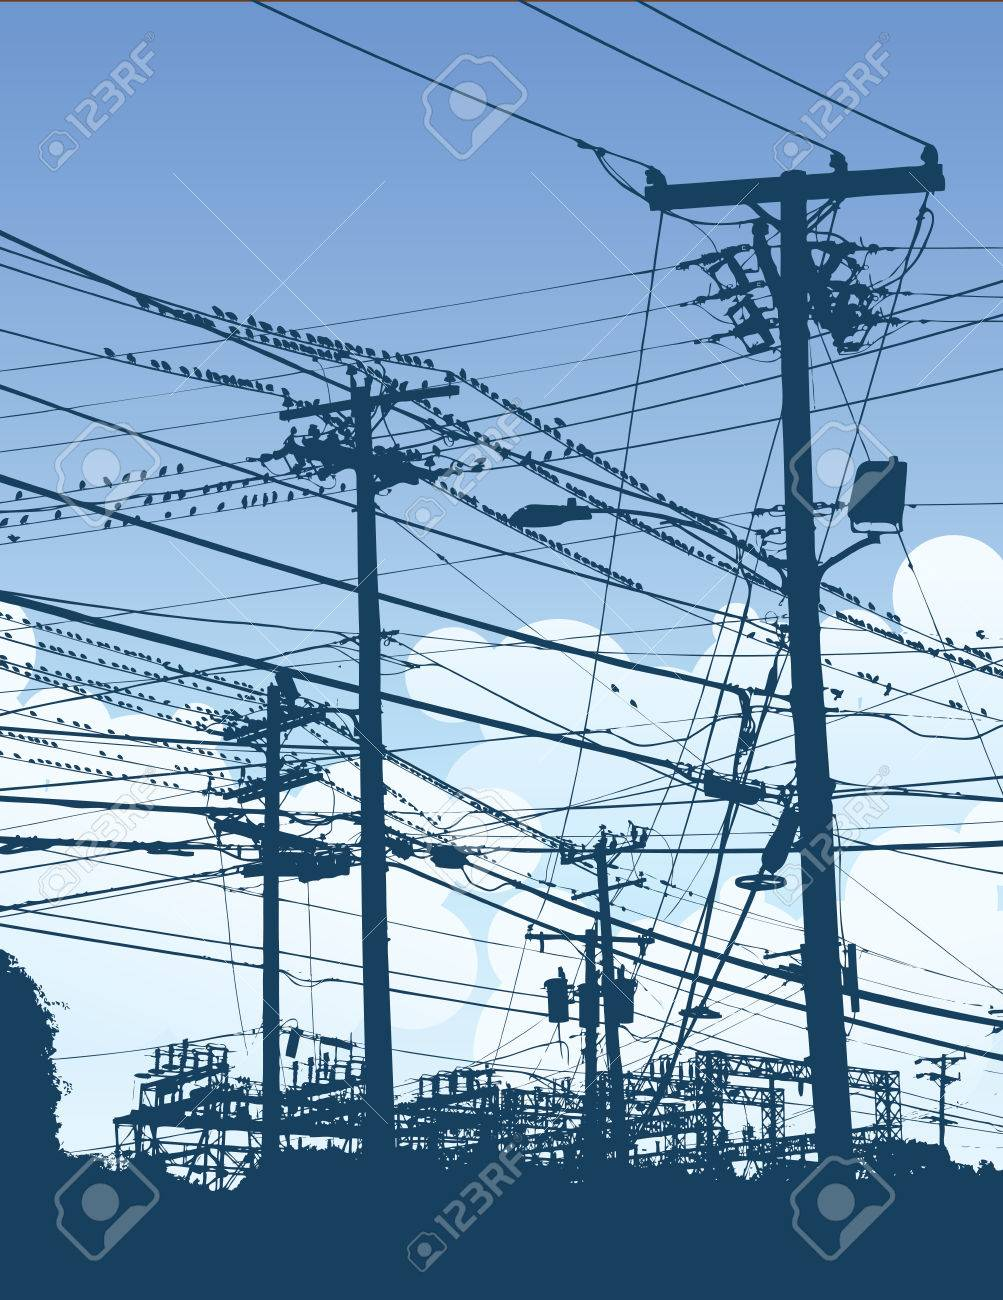 A Complex Maze Of Telephone Poles And Wires Royalty Free Cliparts ...